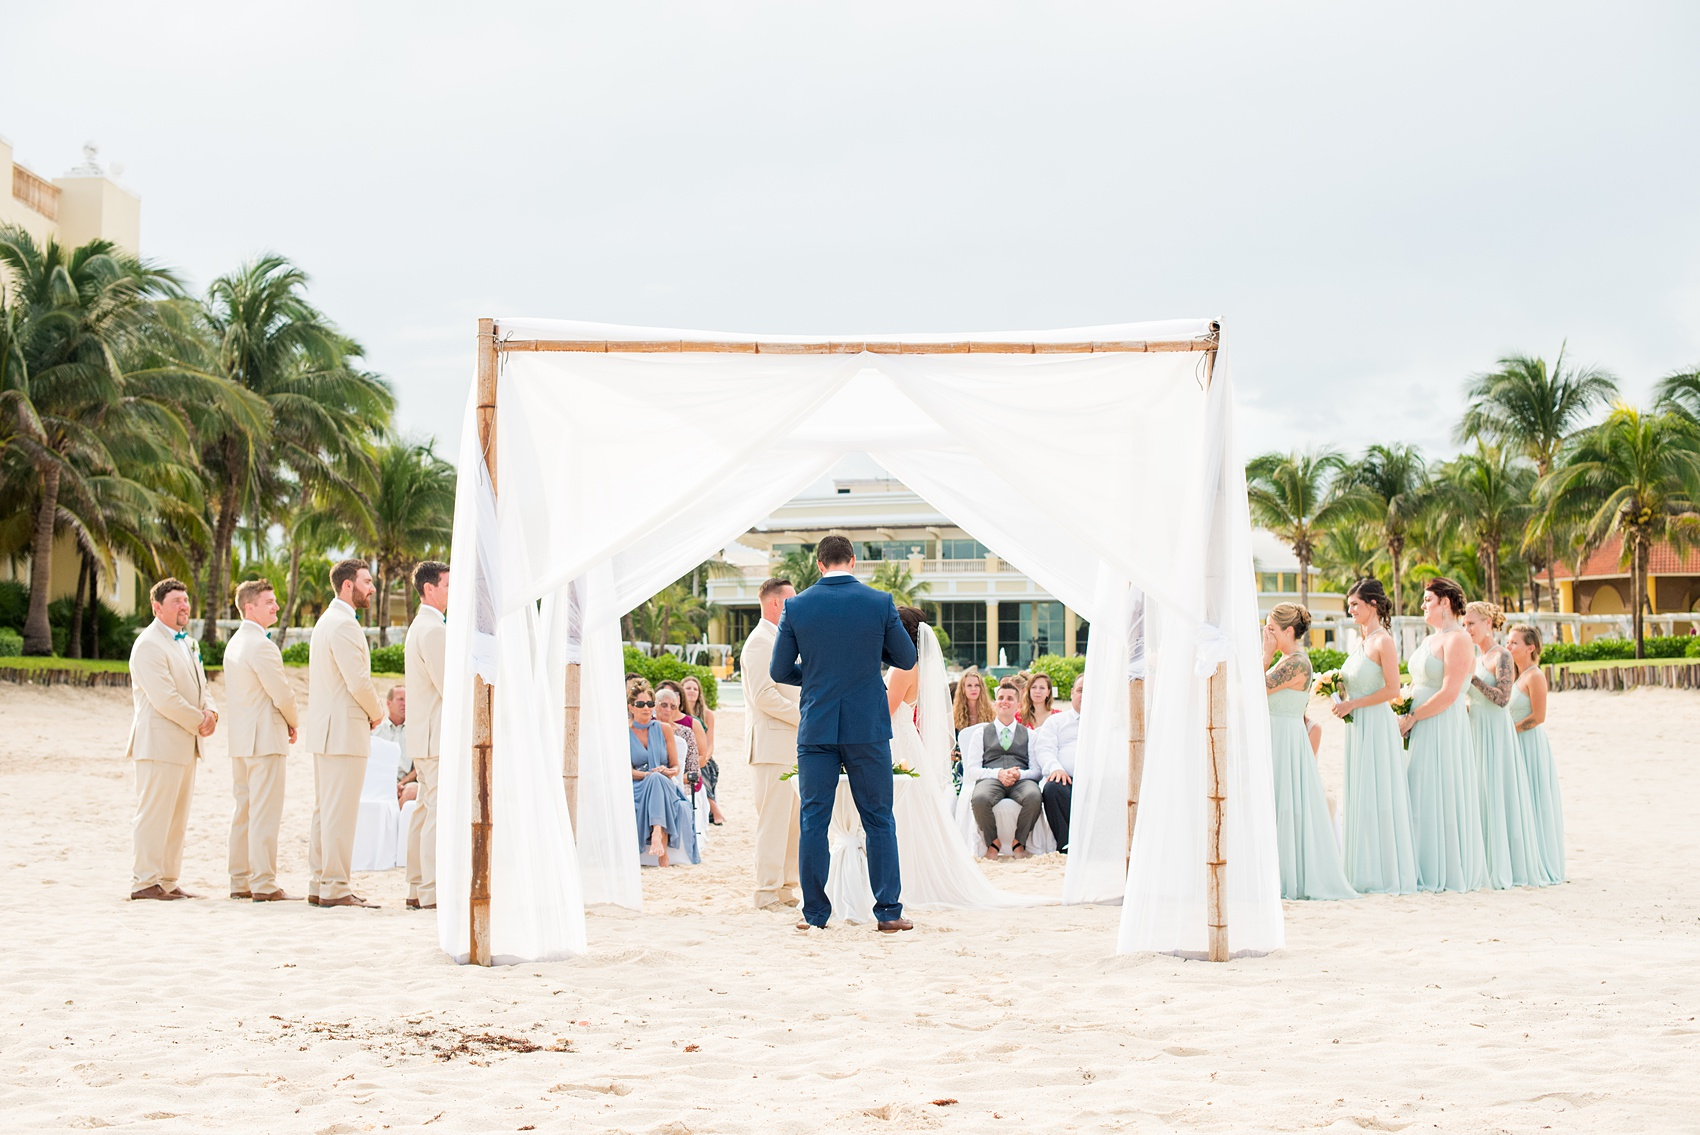 Mikkel Paige Photography photos from a wedding at Grand Paraiso, Mexico, Playa del Carmen Iberostar resort. Picture of their beach ceremony.